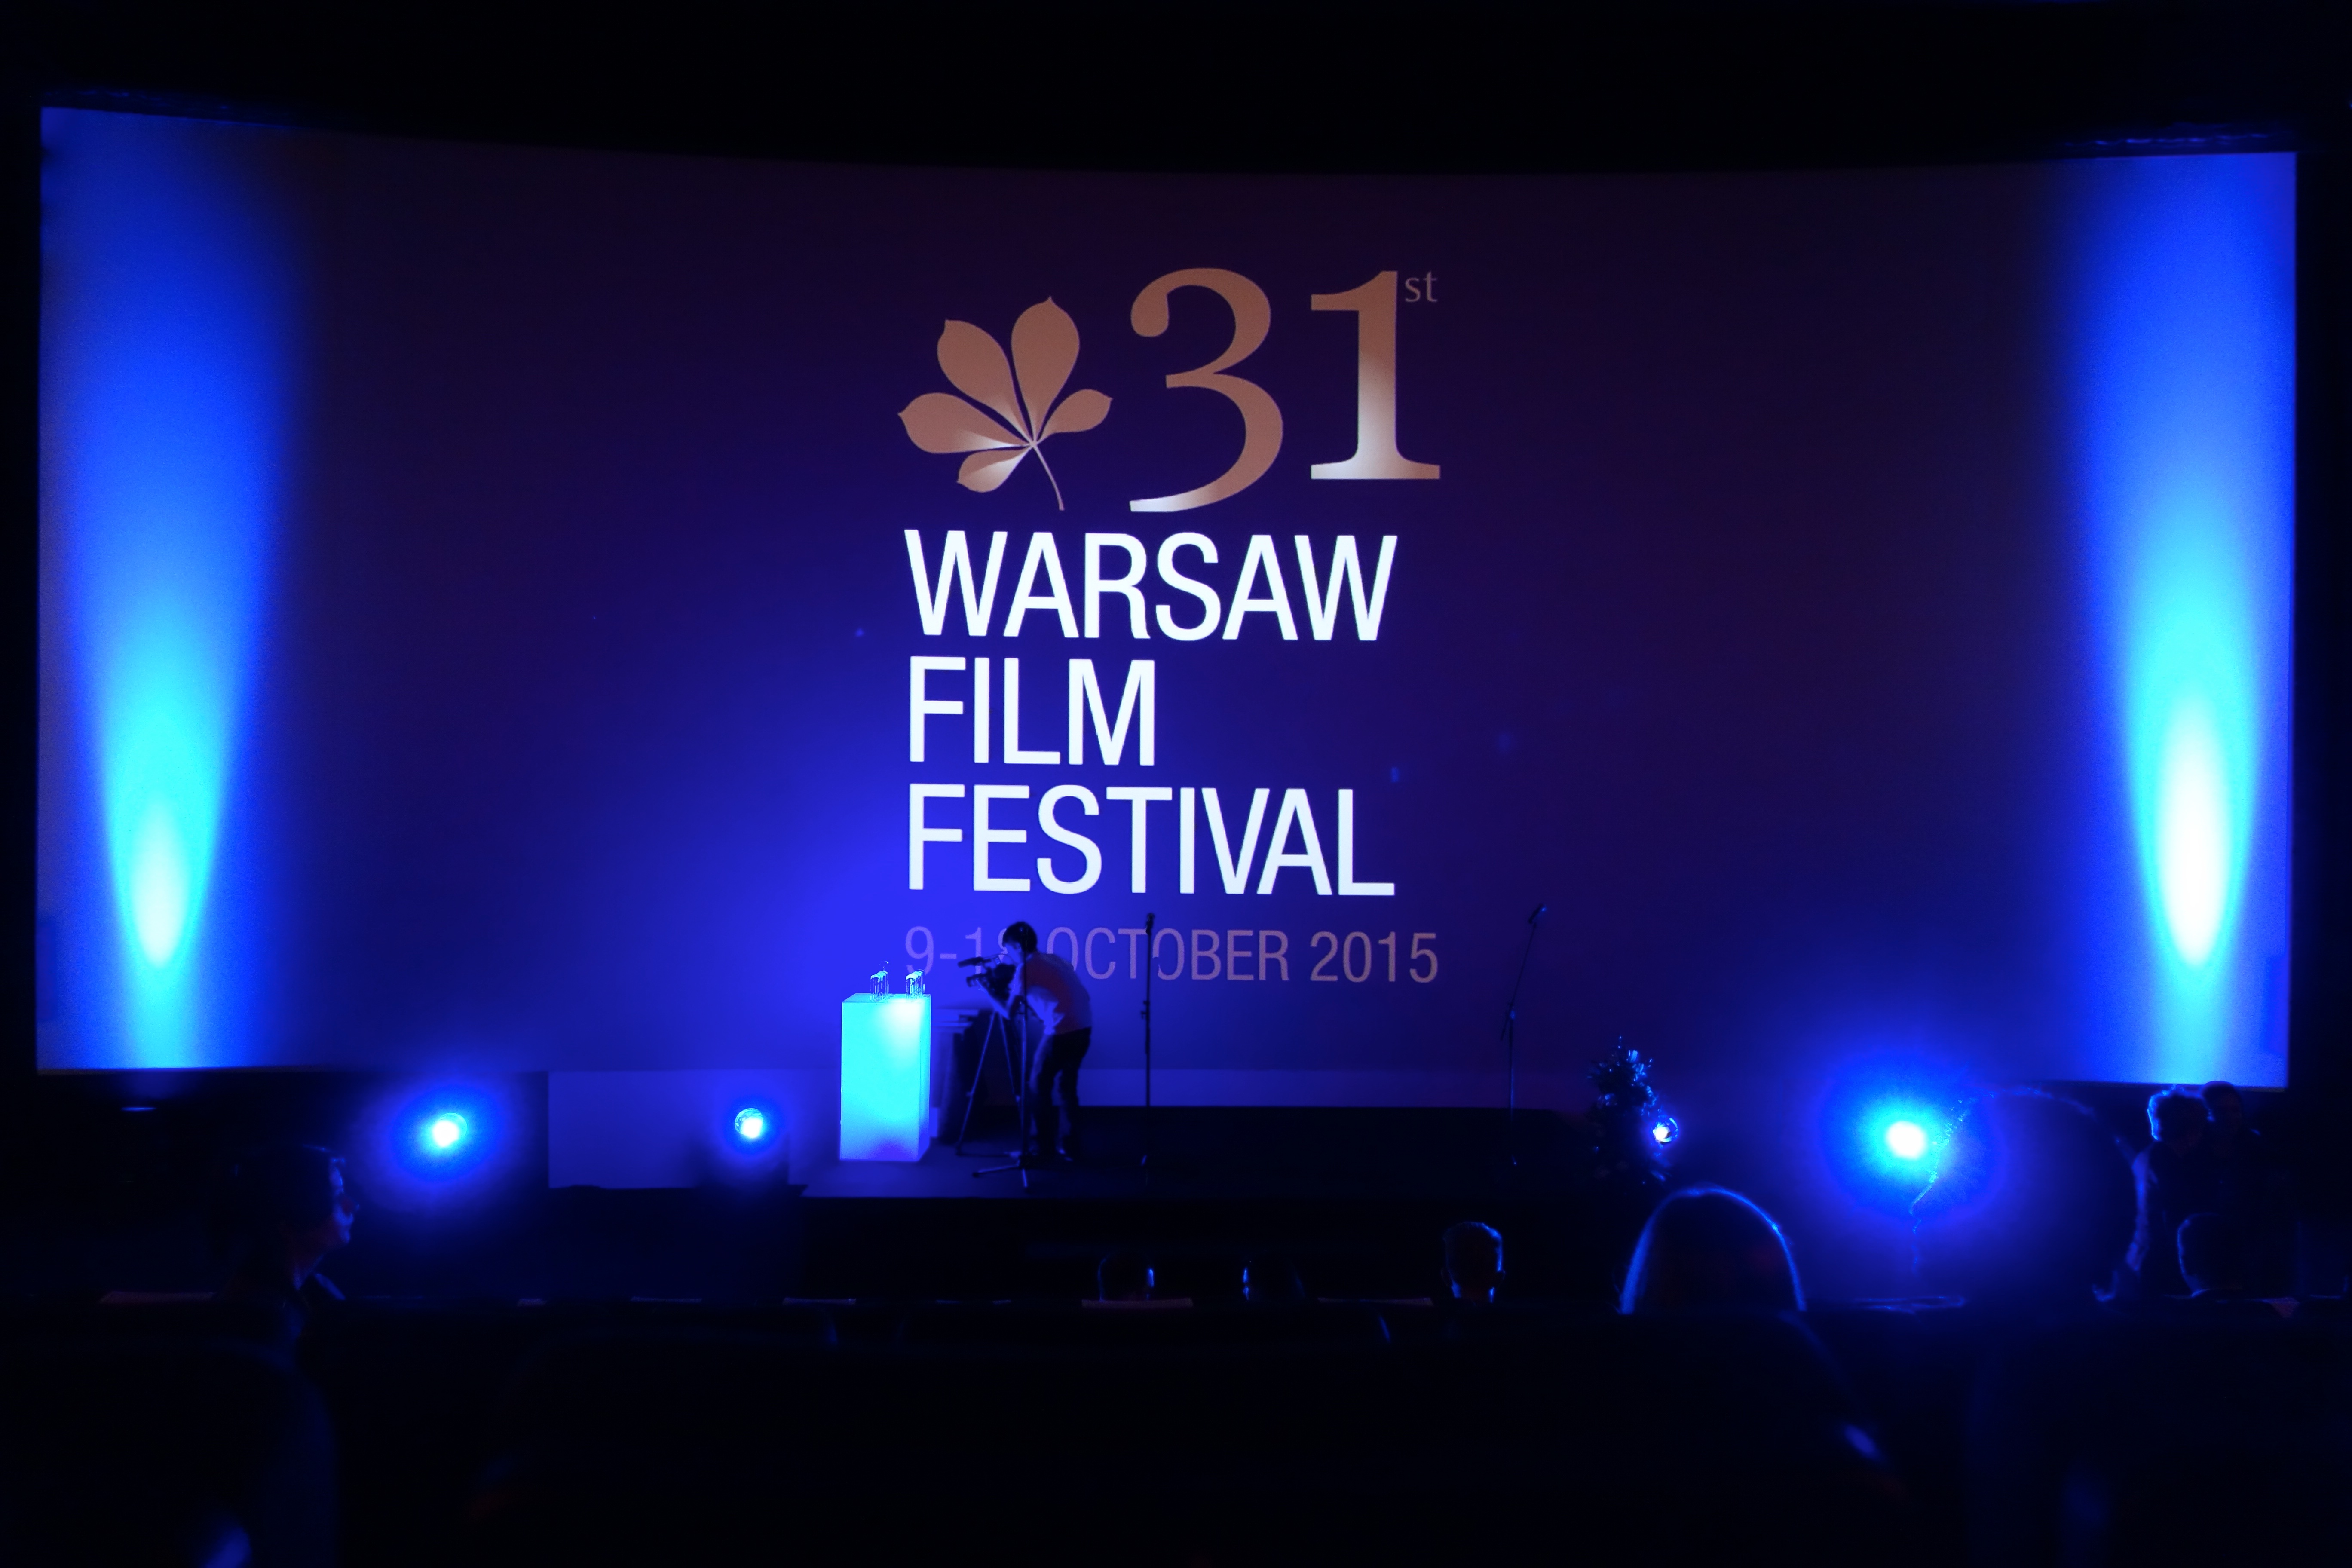 Delegation of movie Stanko at 31st Warsaw Film Festival